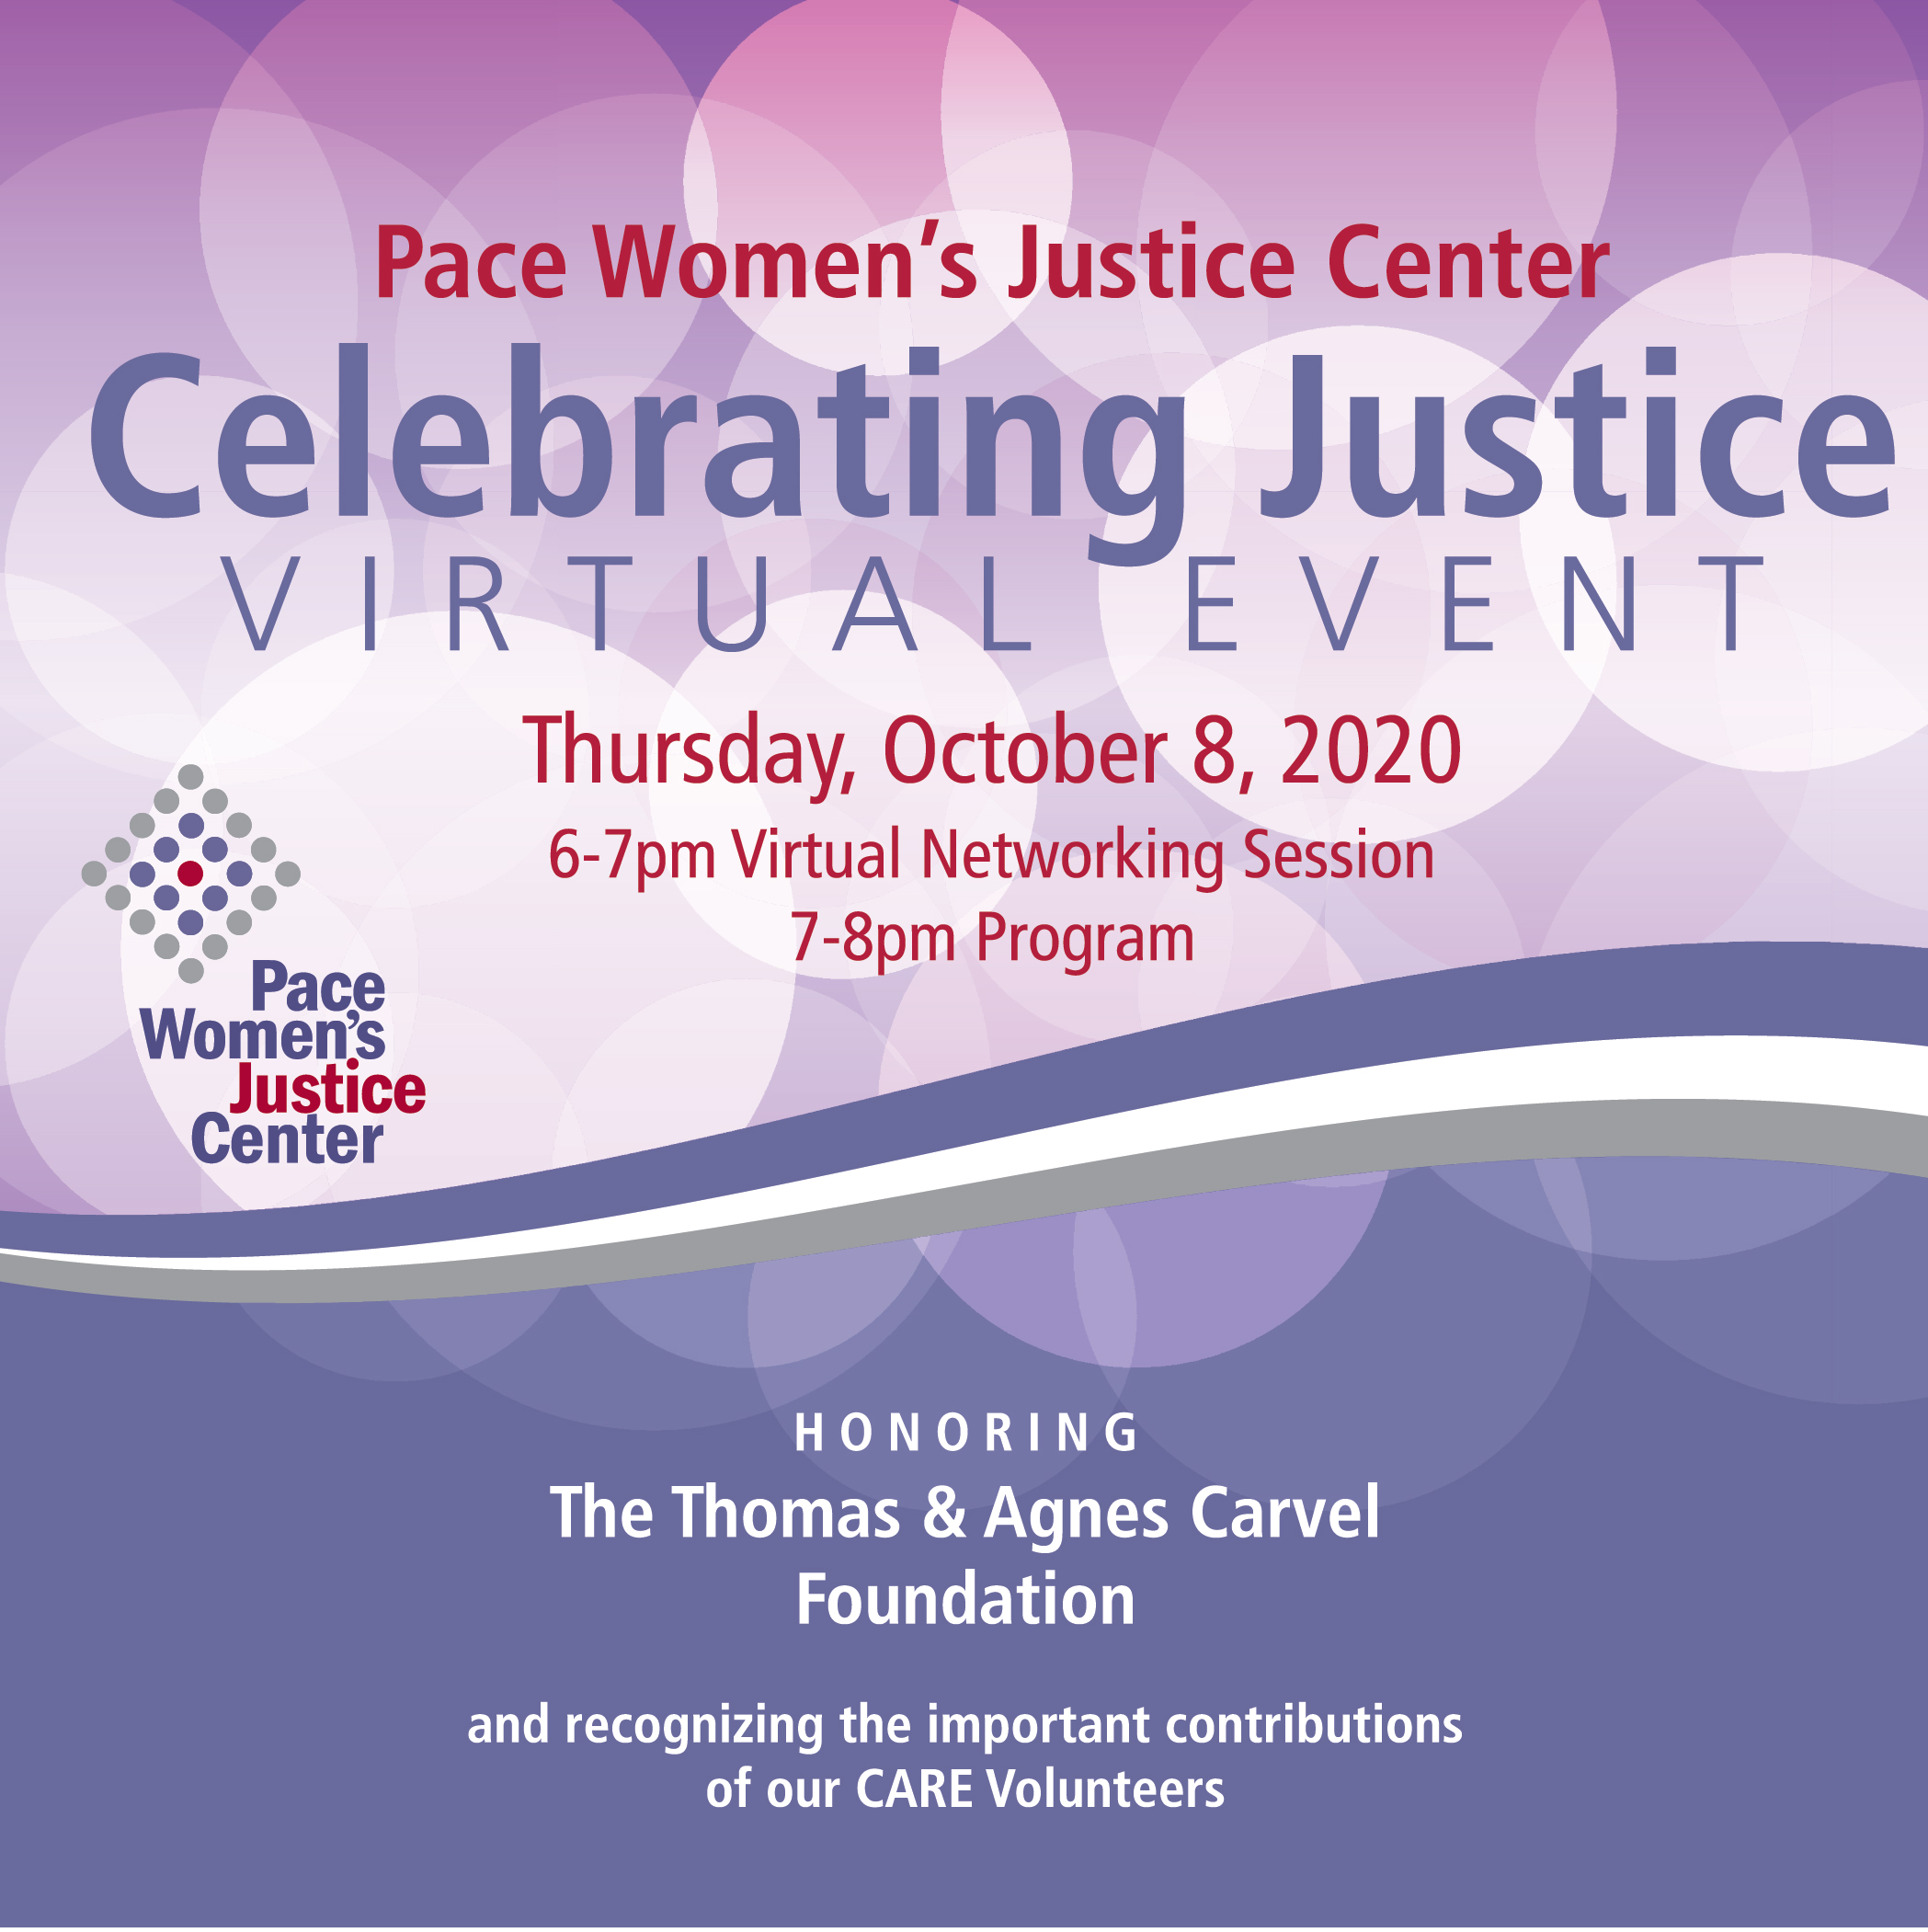 Celebrating Justice Virtual Event